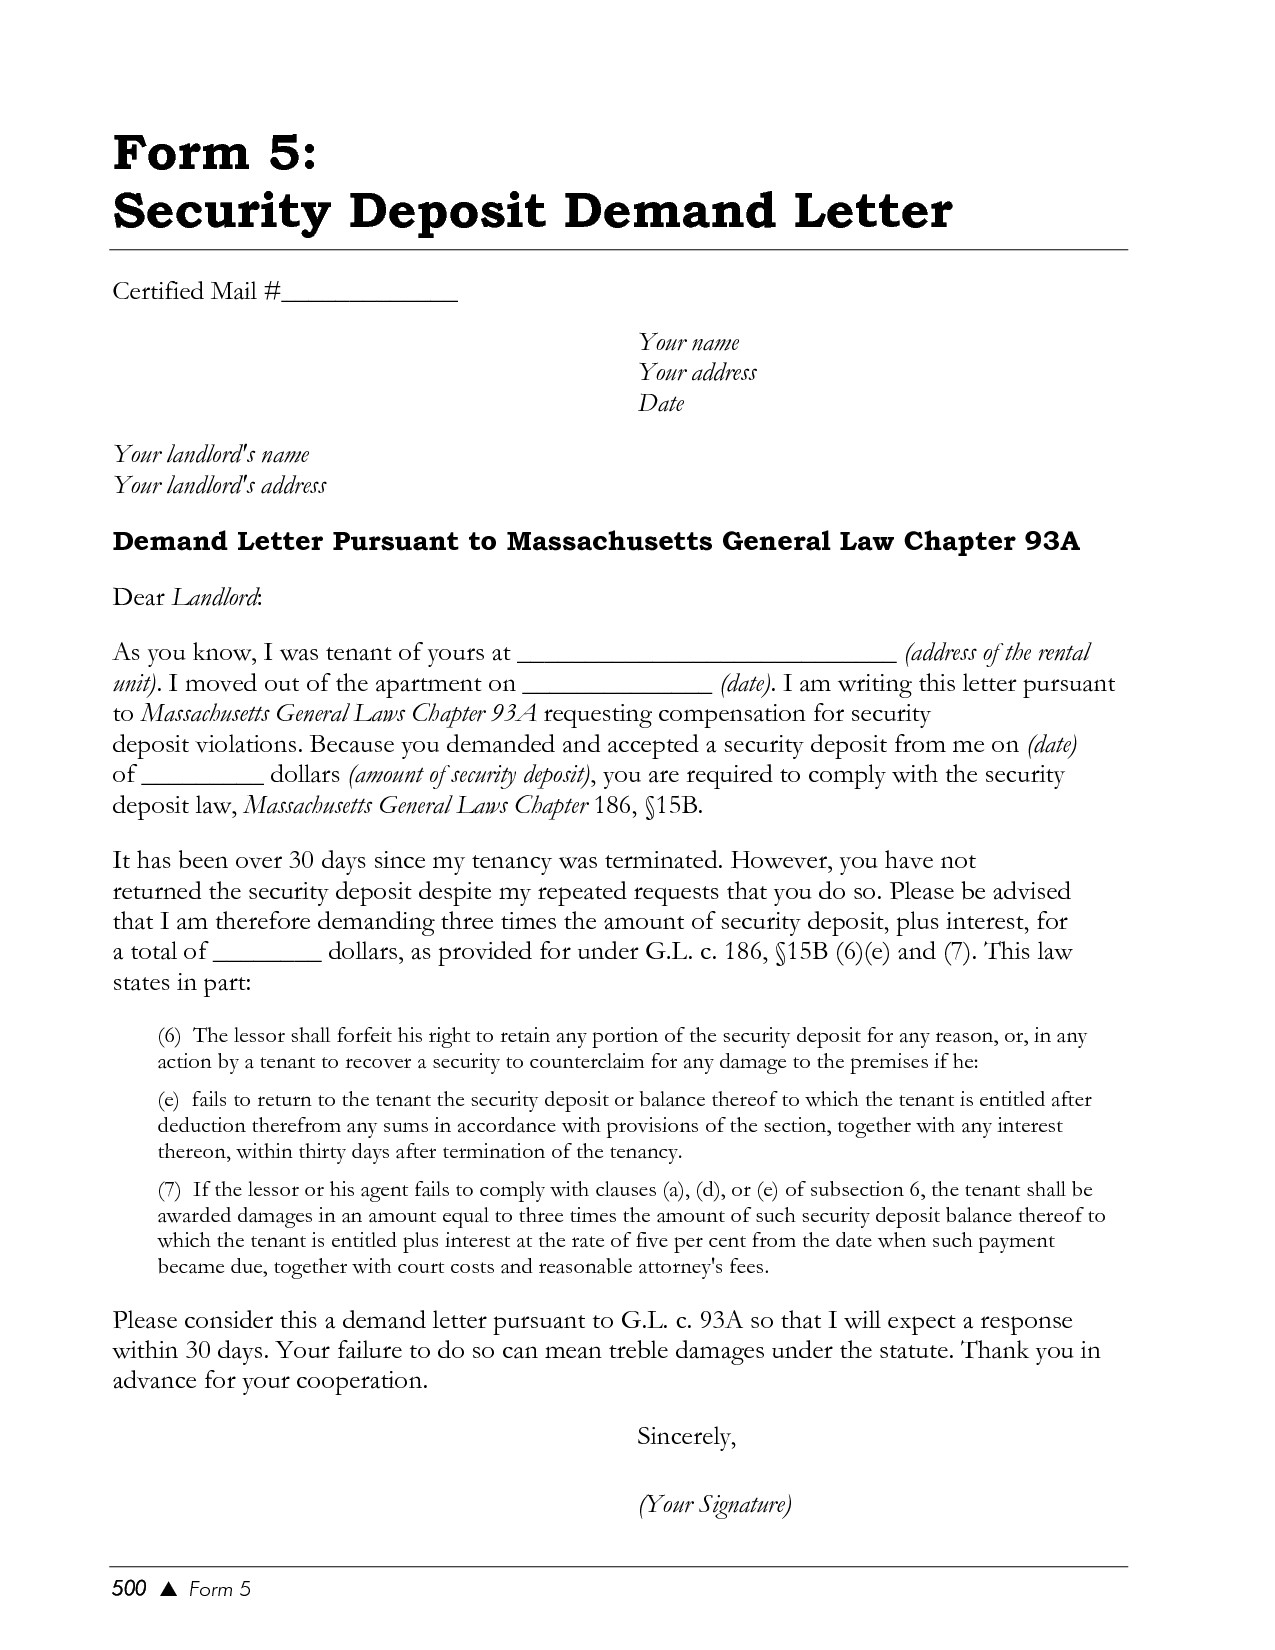 Security Deposit Demand Letter Template Florida - Security Deposit Agreement form What is the Security Deposit that